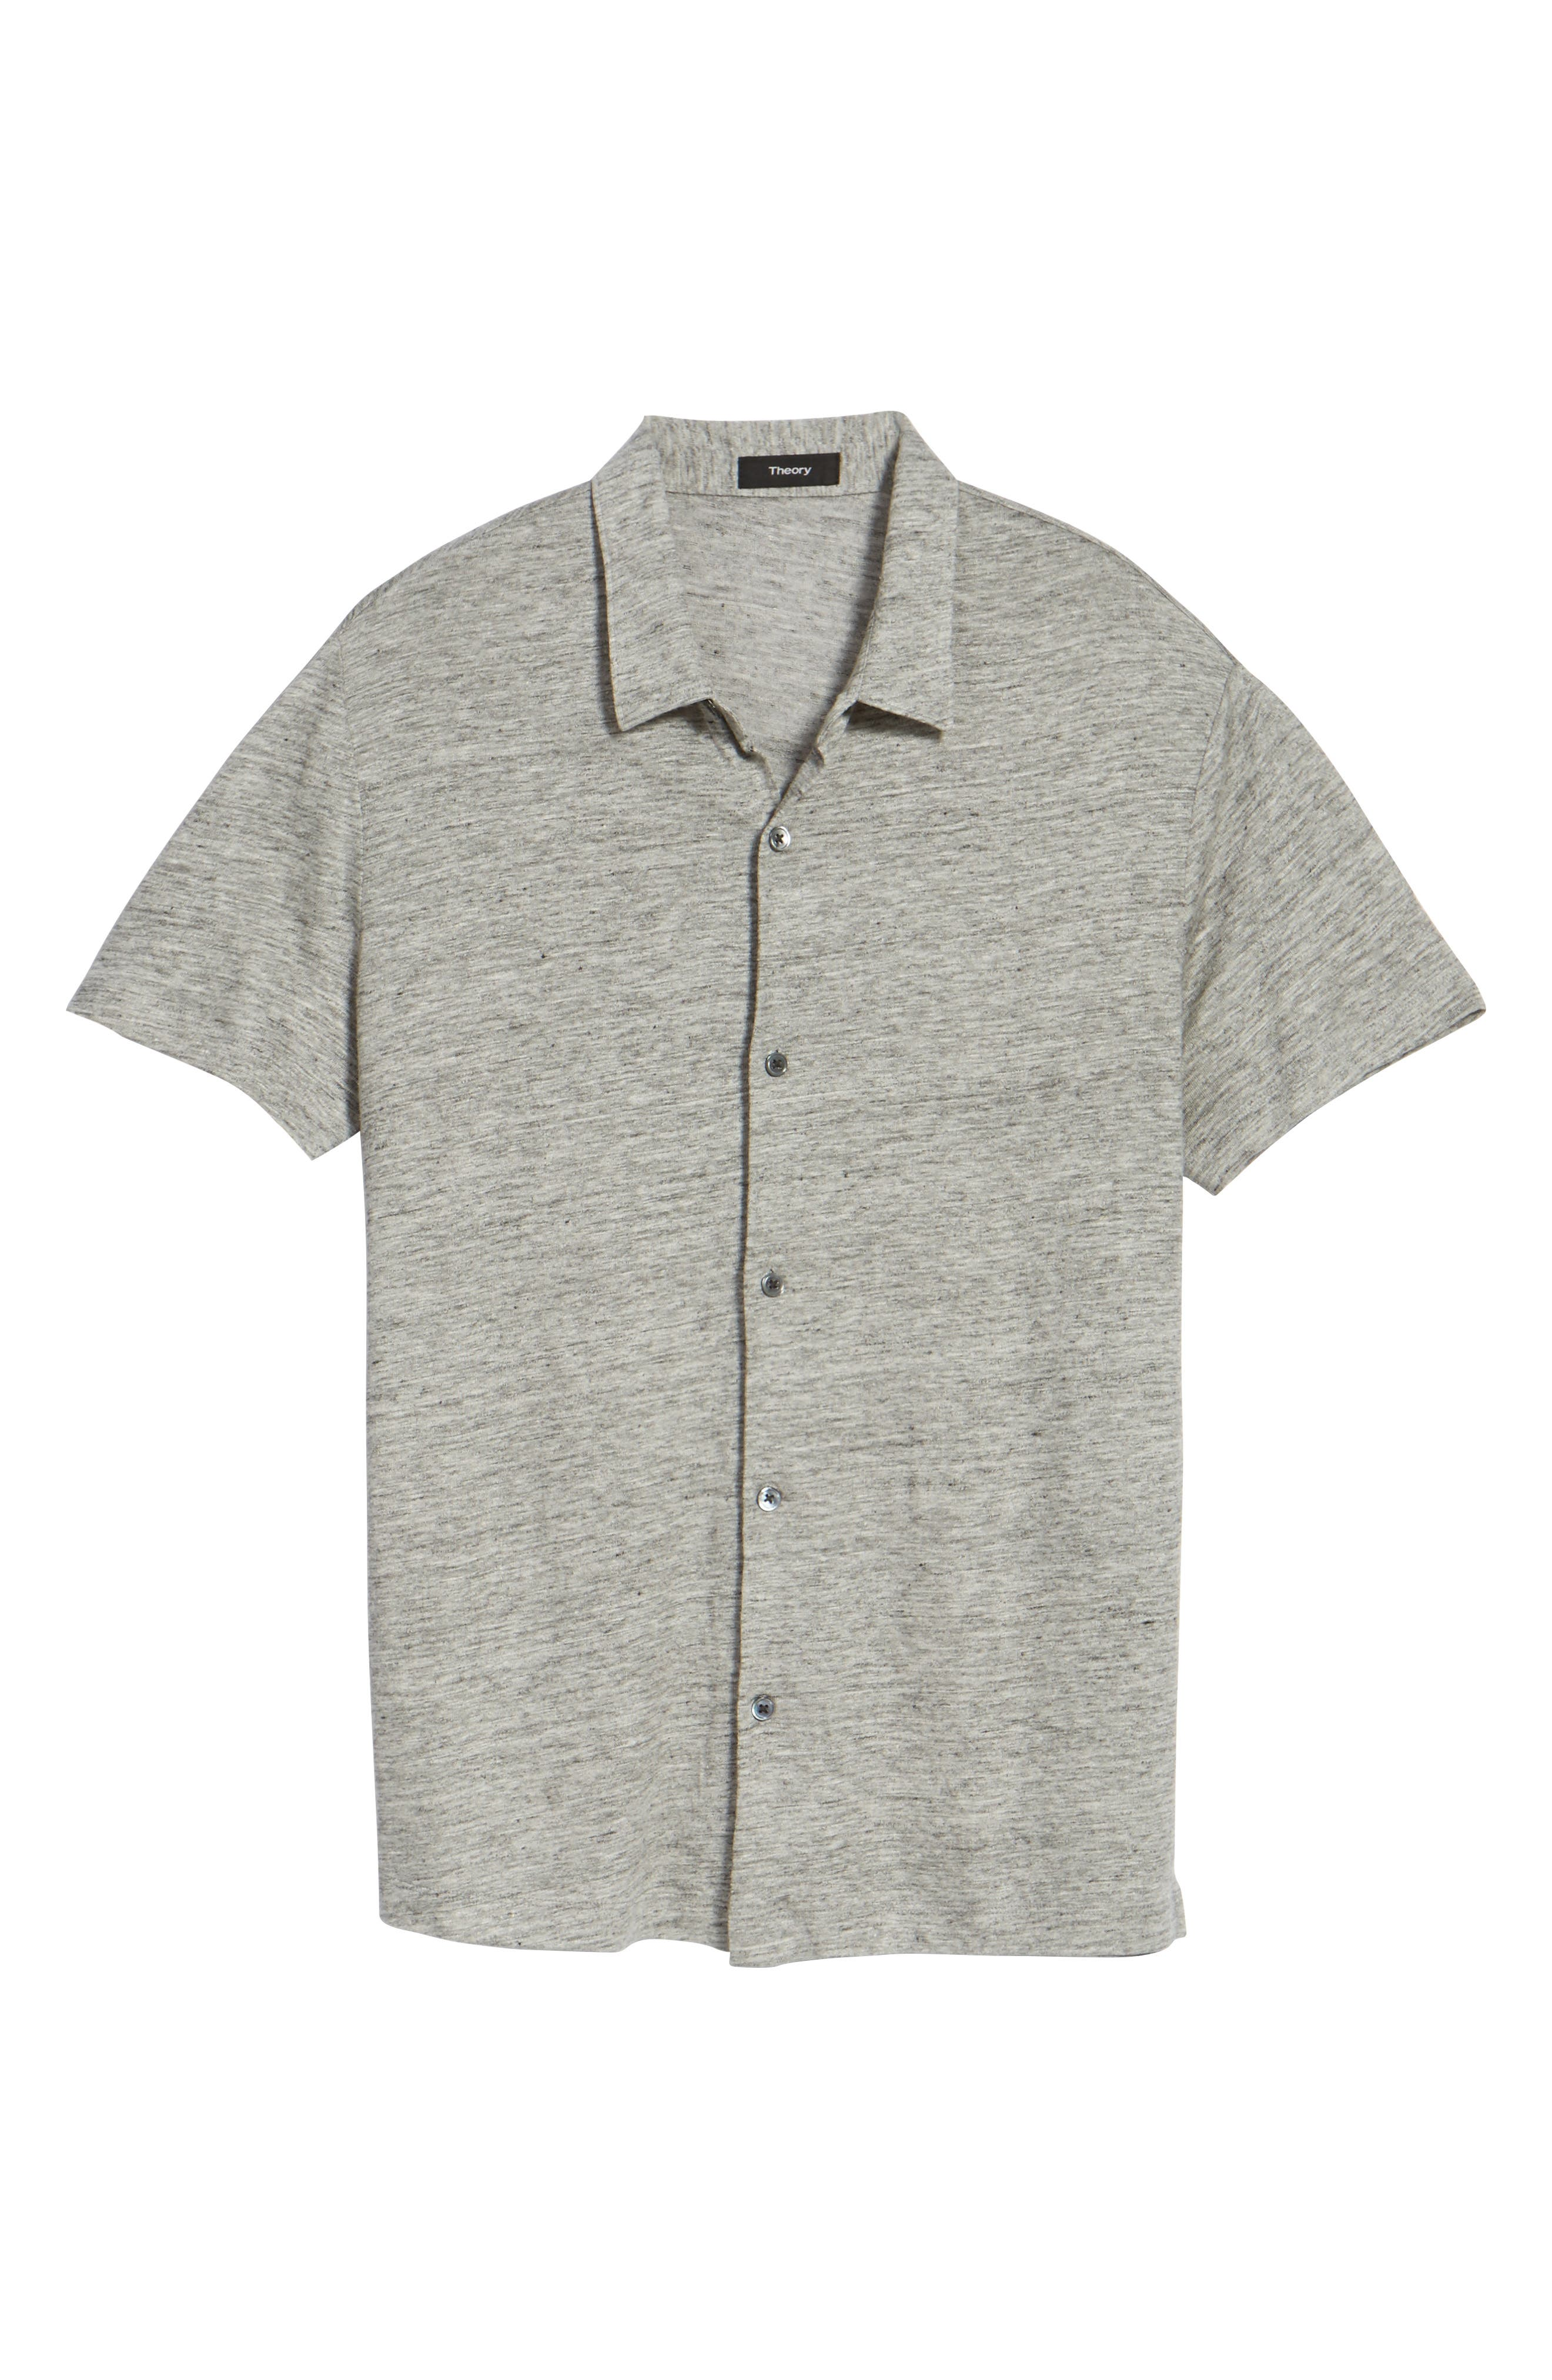 Linen Knit Sport Shirt,                             Alternate thumbnail 5, color,                             Grey Heather